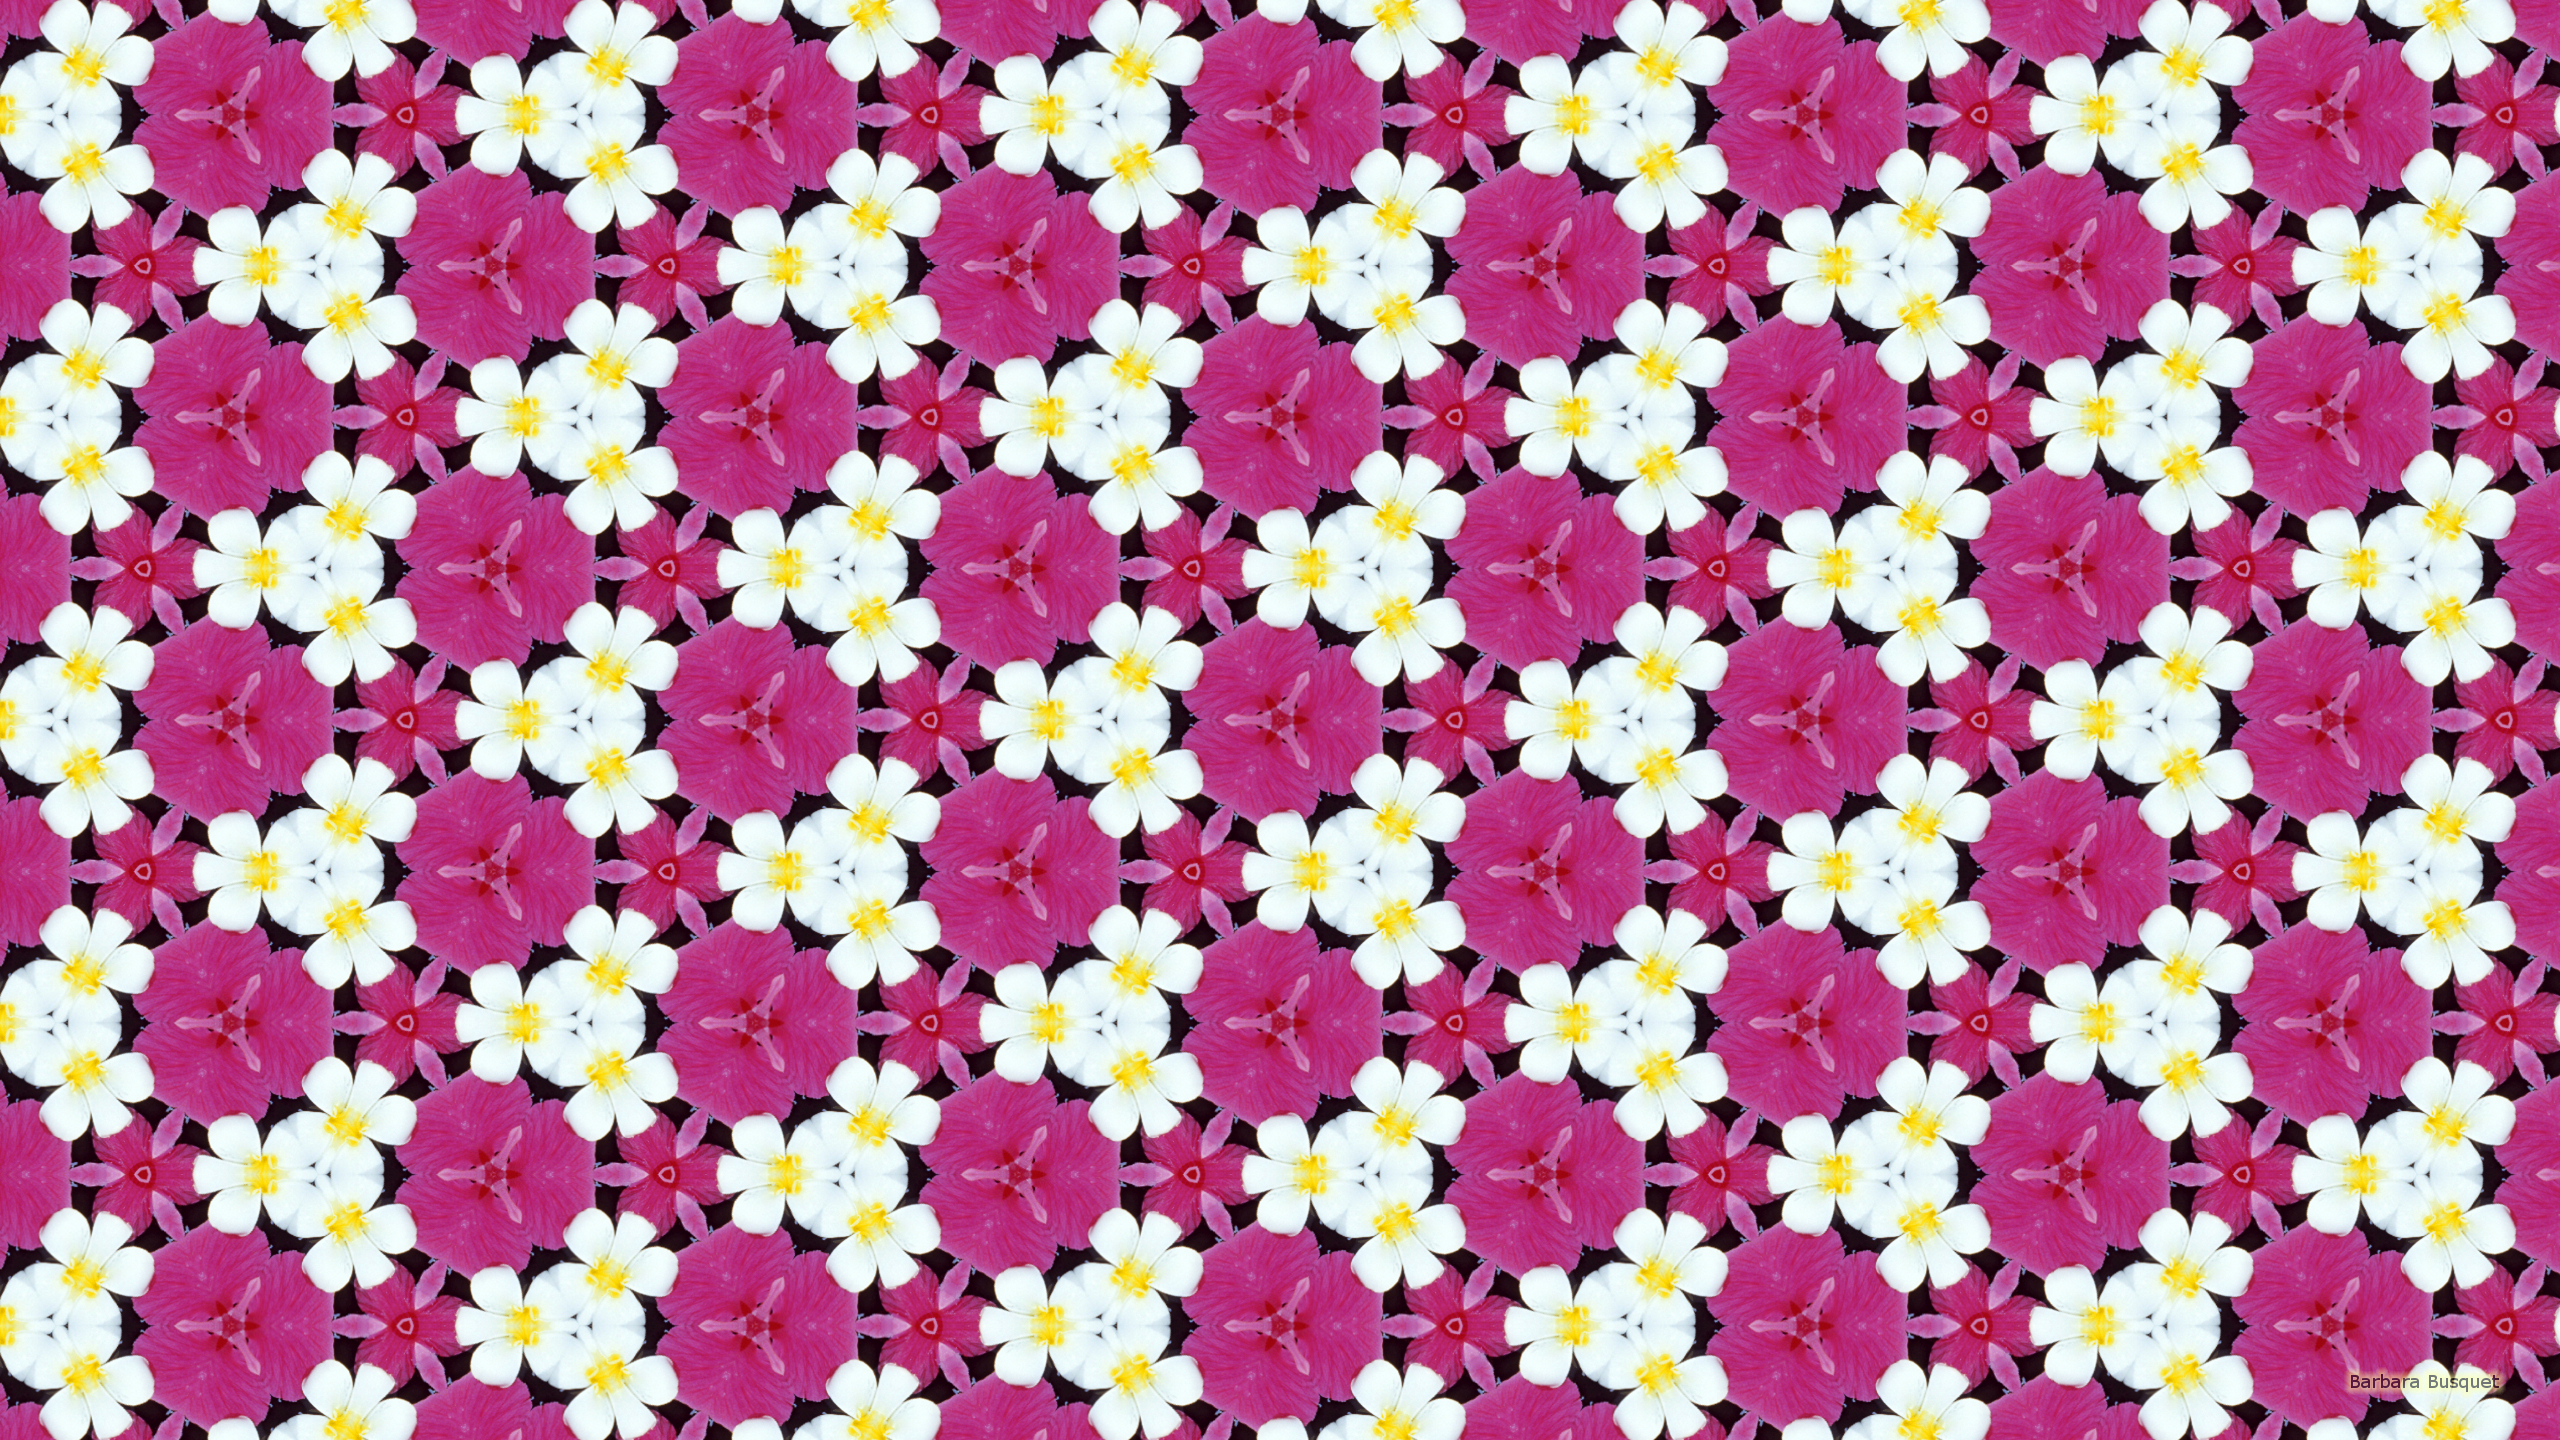 White and Pink Flowers Wallpaper - WallpaperSafari